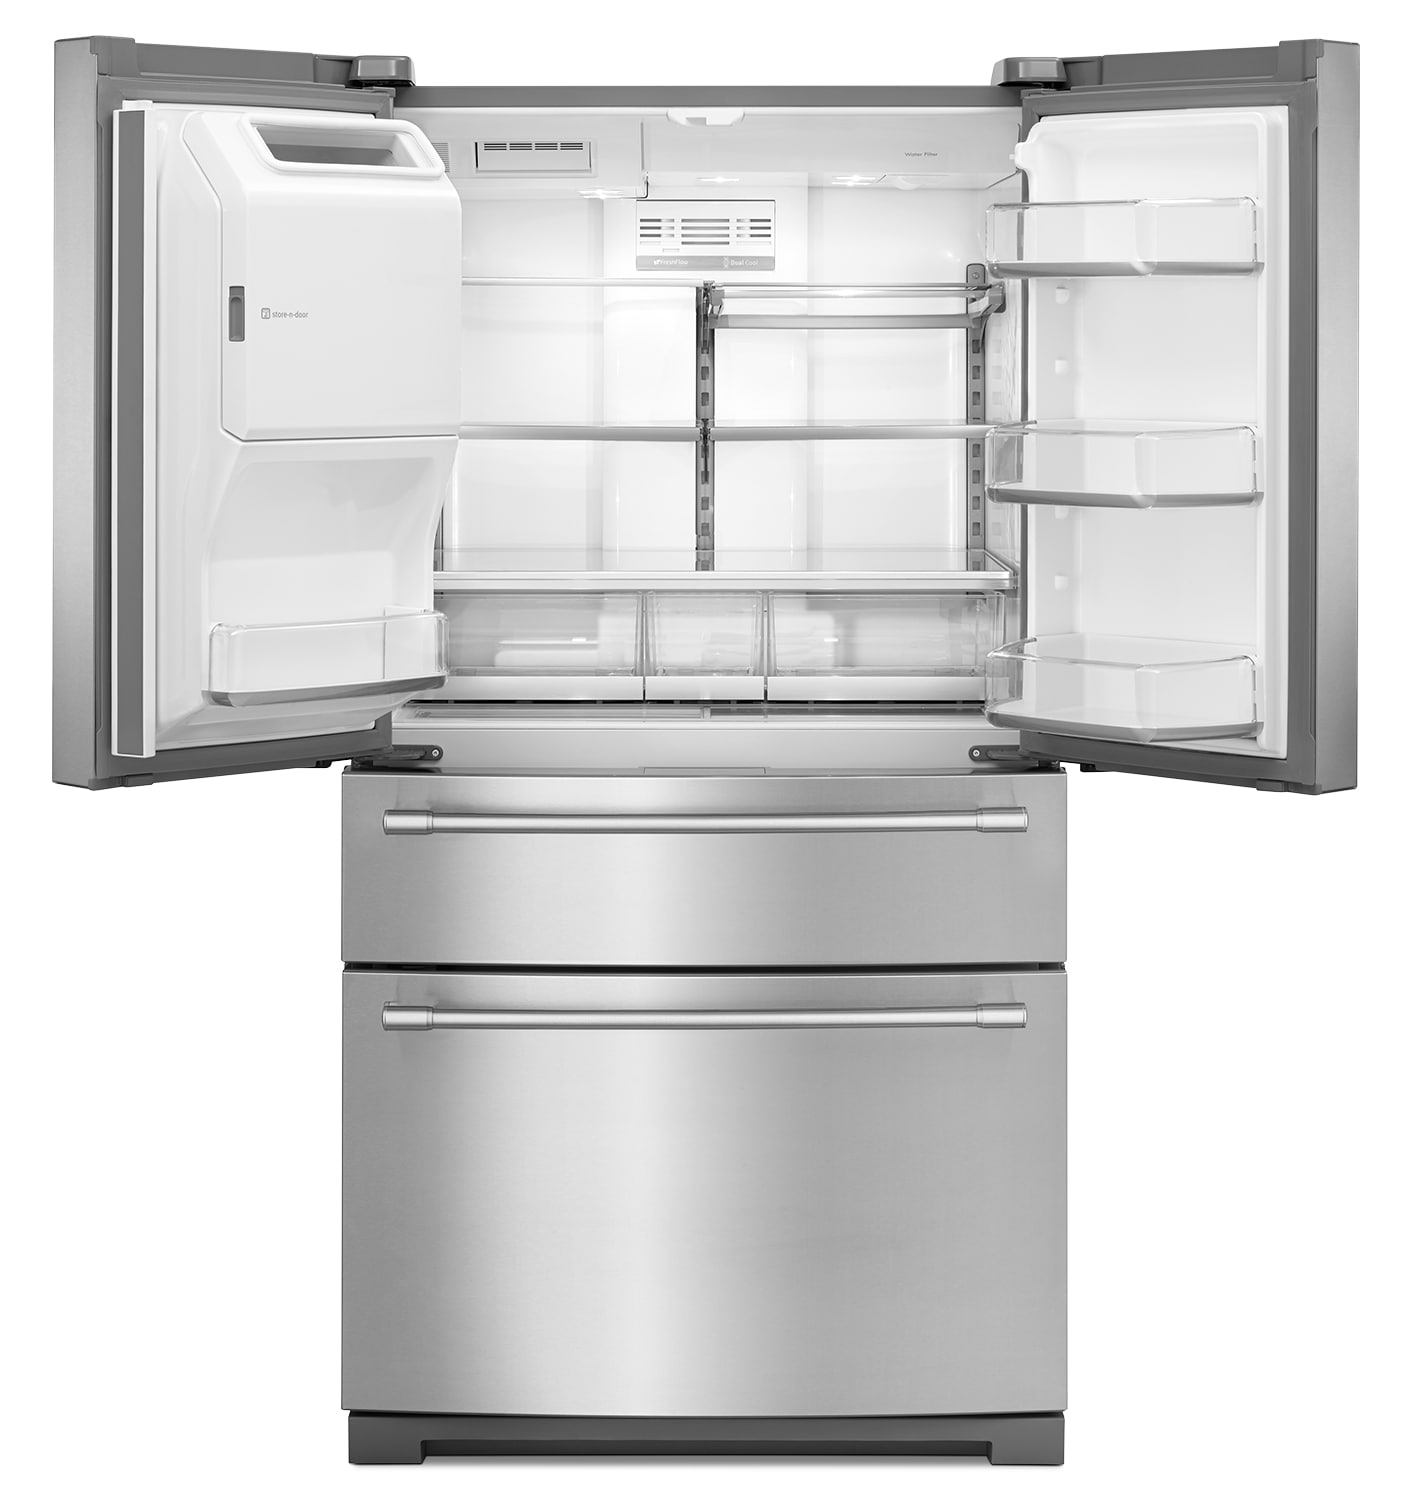 French Door Refrigerators: Maytag Stainless Steel French Door Refrigerator (26.1 Cu